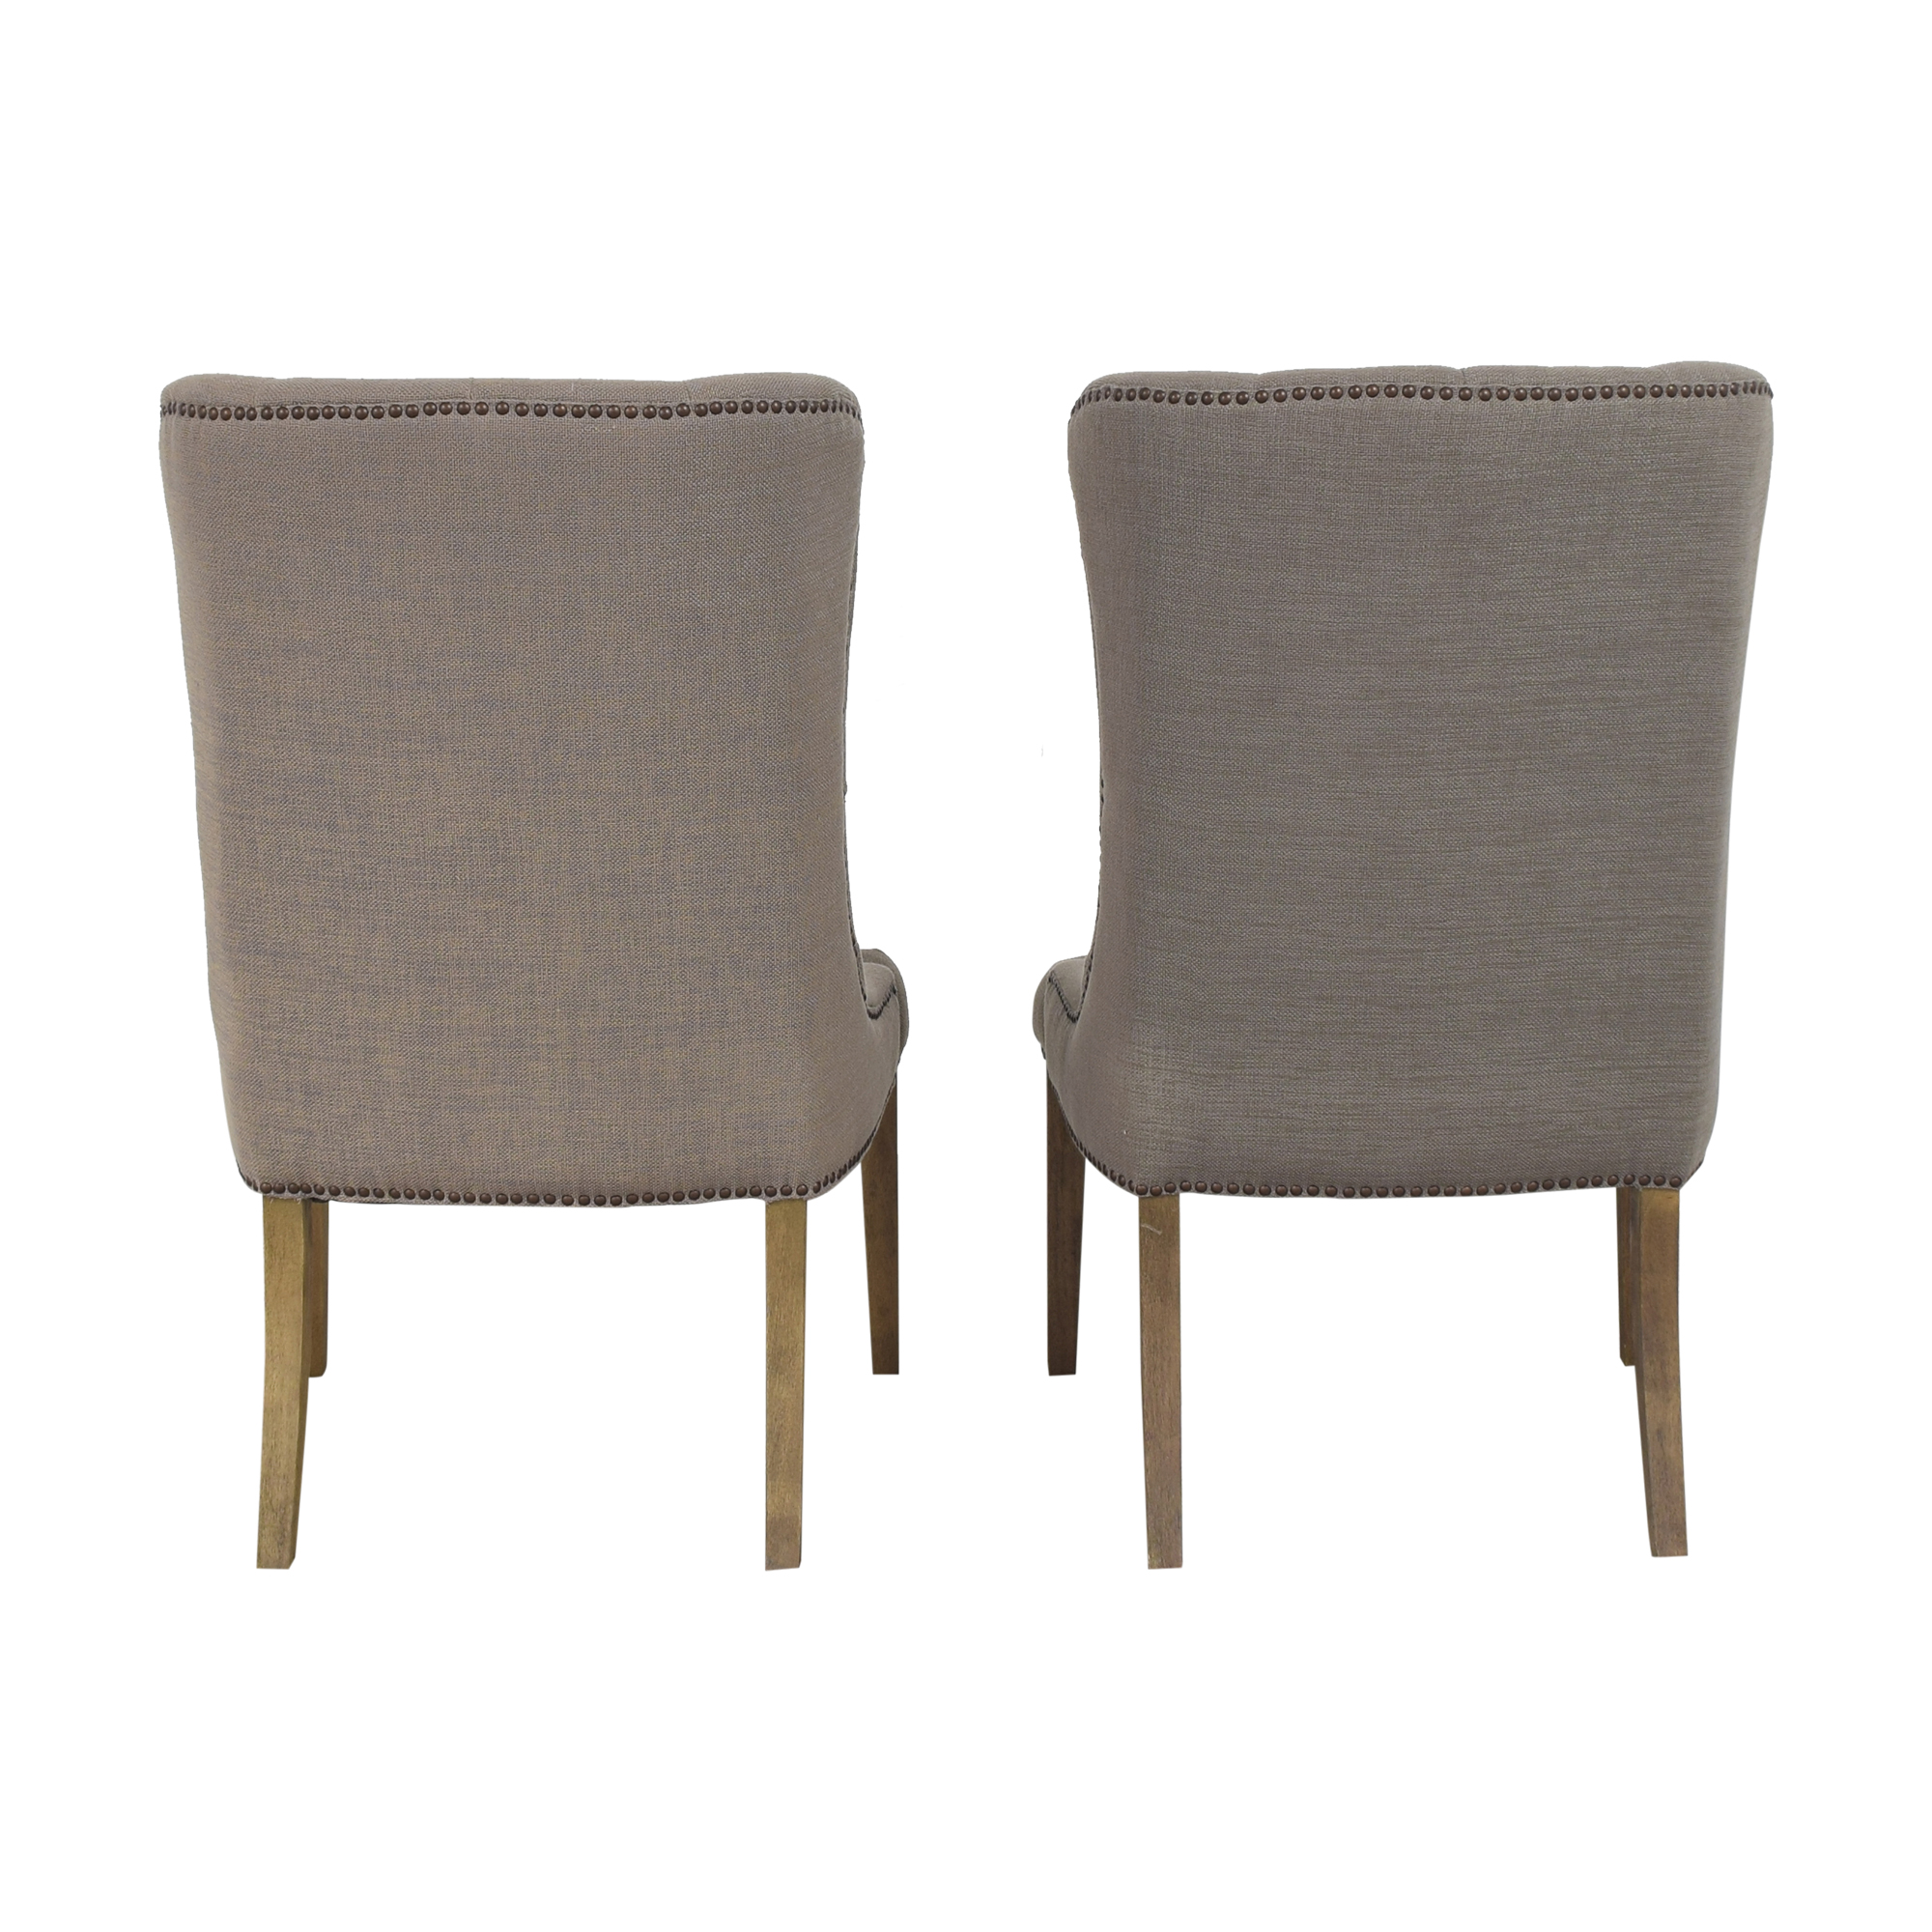 shop Four Hands Elouise Dining Chairs Four Hands Chairs